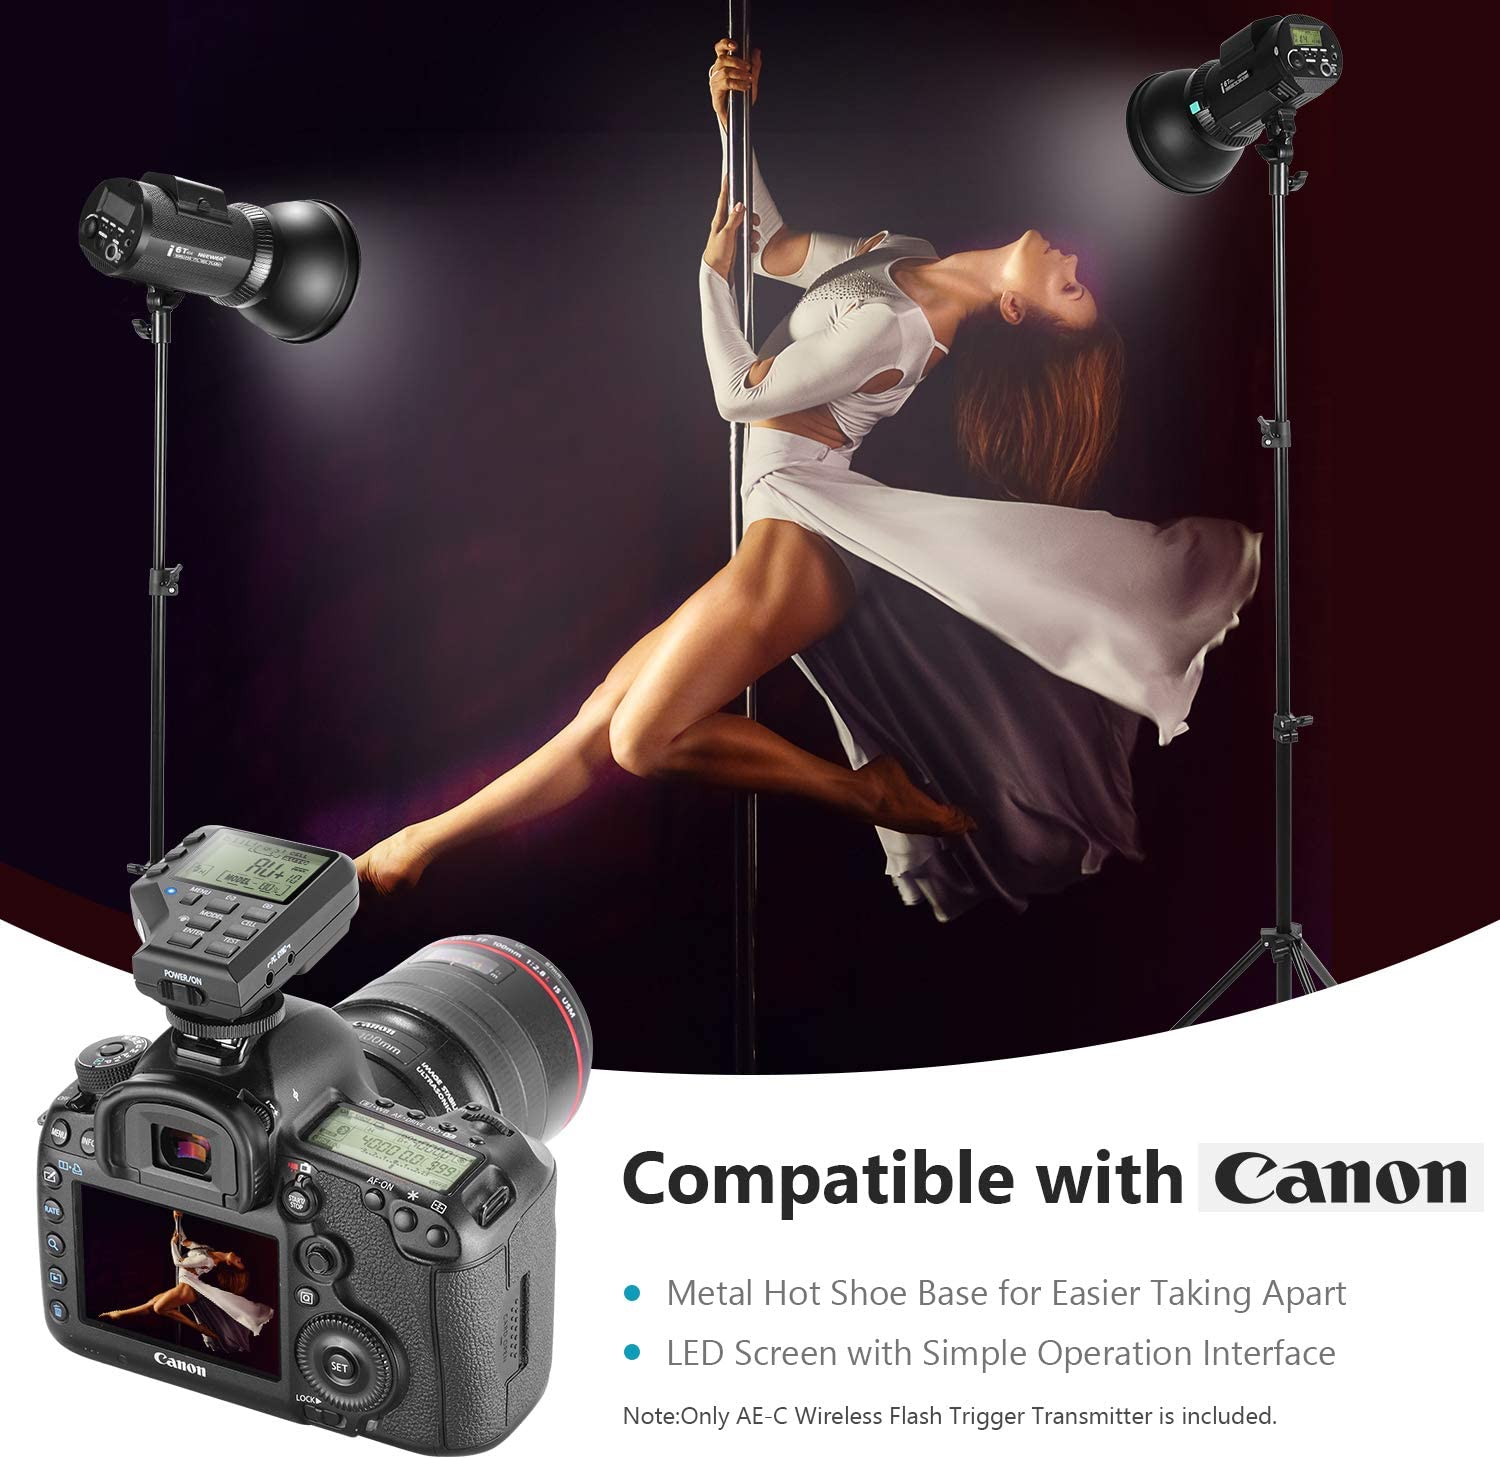 Neewer AE-C 2.4G Wireless Flash Trigger Transmitter Compatible with Canon EOS DSLR Camera and Neewer i6T EX 600W Outdoor Studio Flash Strobe Monolight